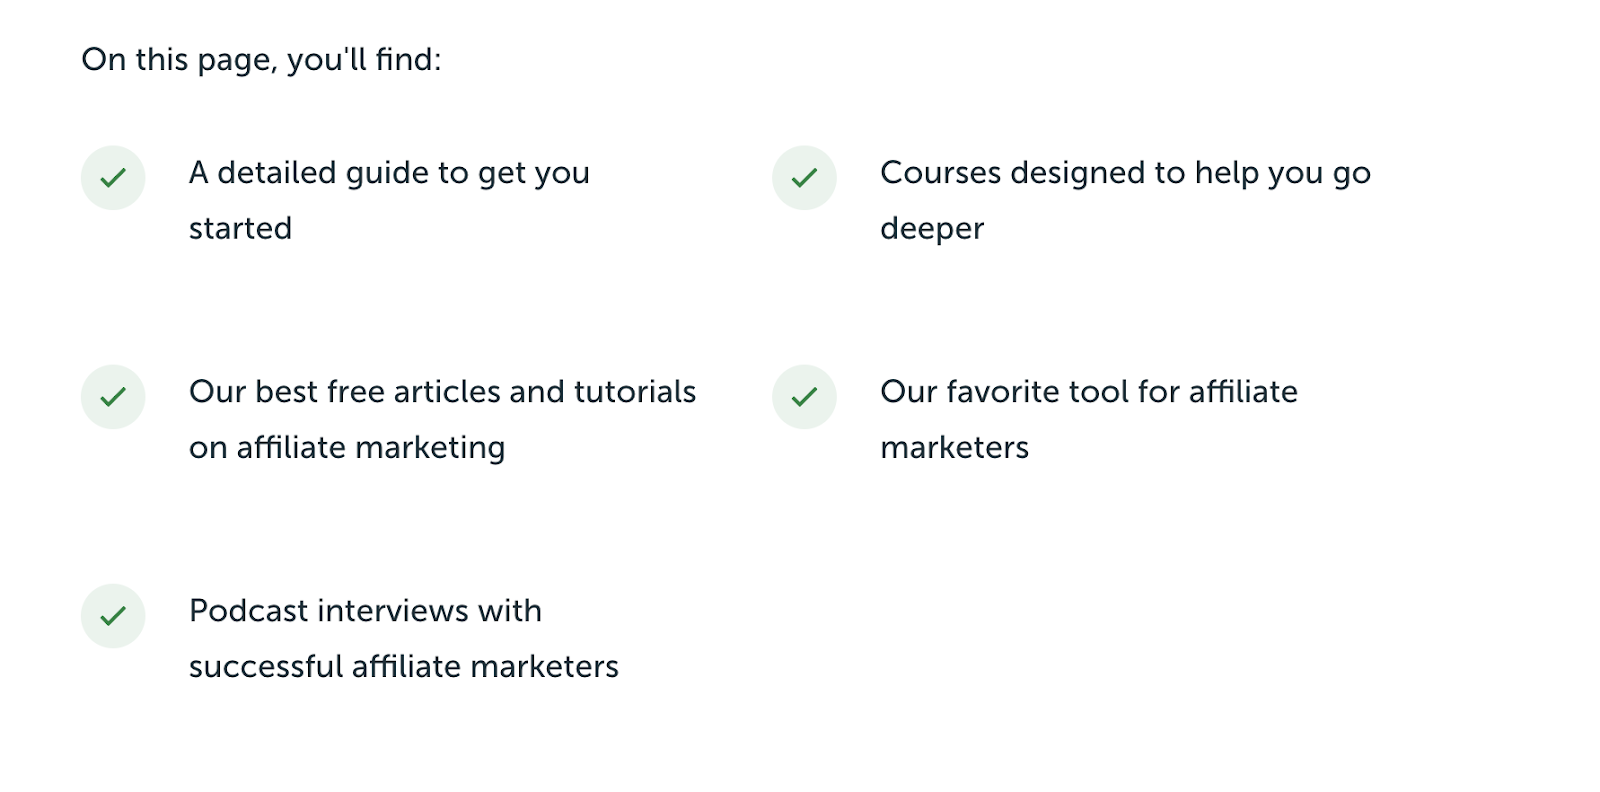 SPI Landing Page (Blog Layout Example) for Affiliate Marketing Topics